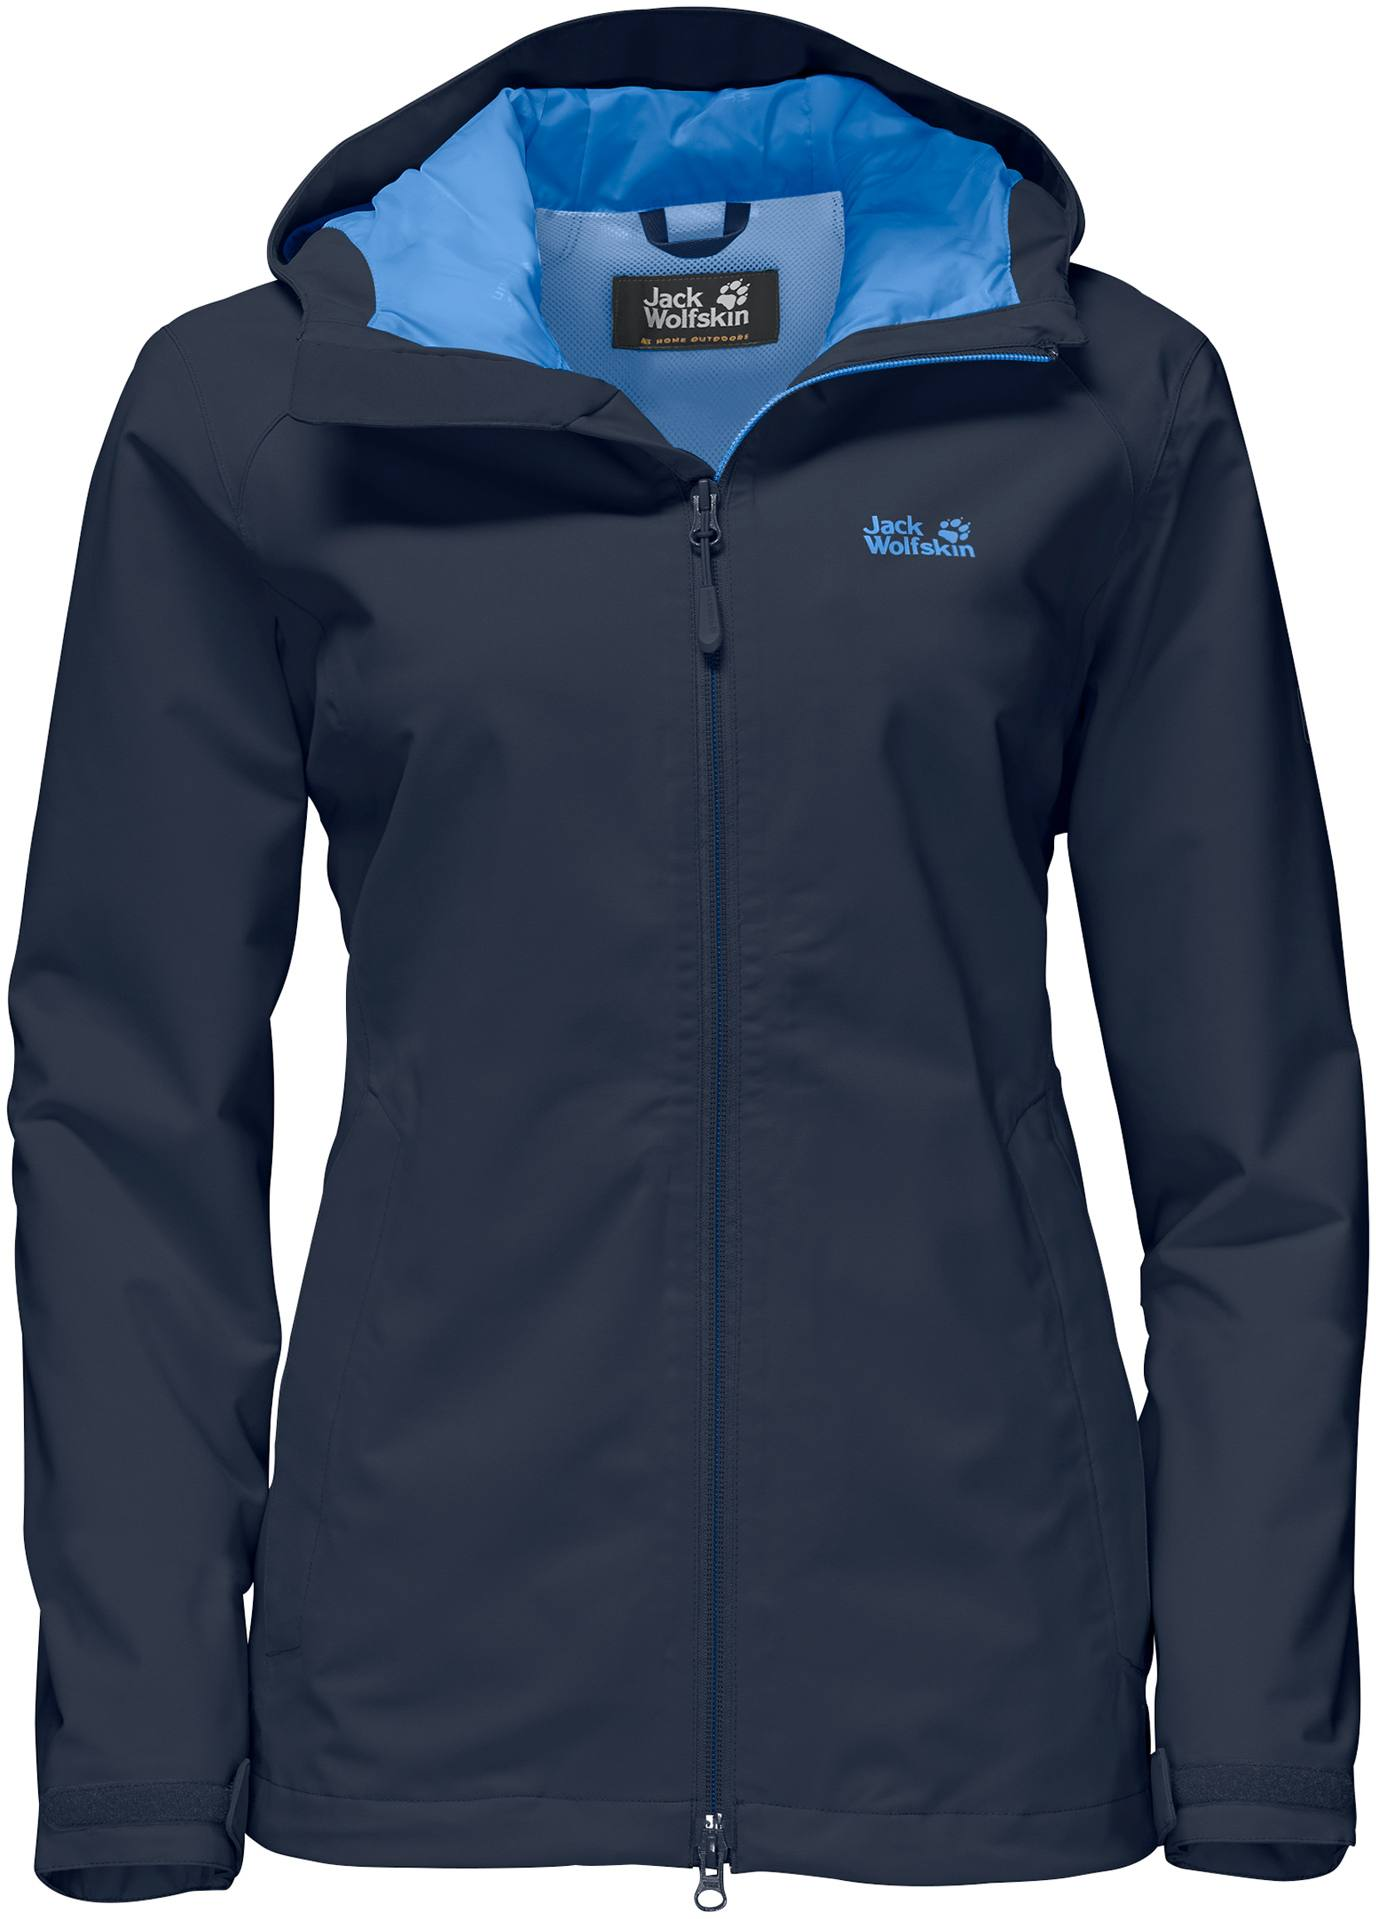 Jack Wolfskin Arroyo Jacket Women's